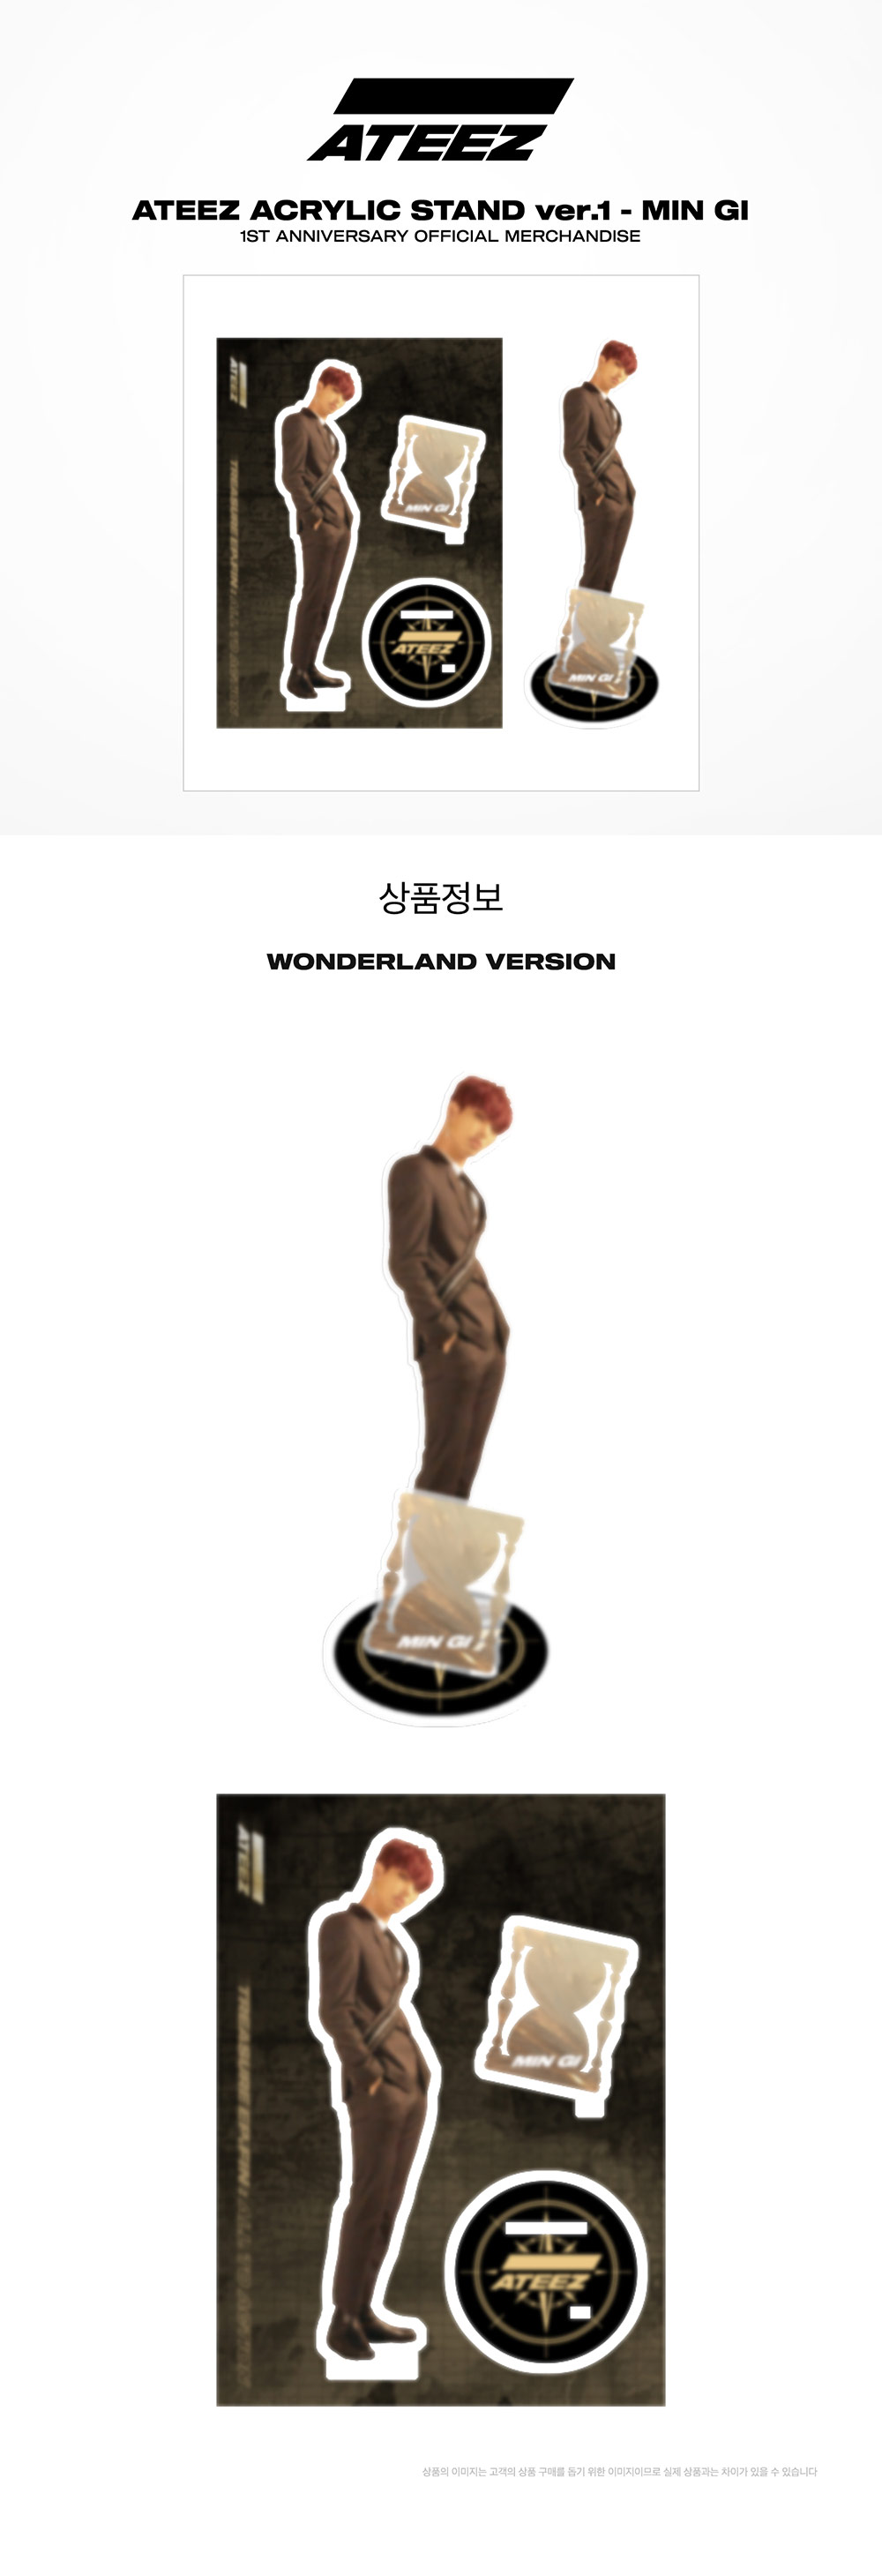 ateez_1st_anniversary_ACRYLIC_STAND1-2